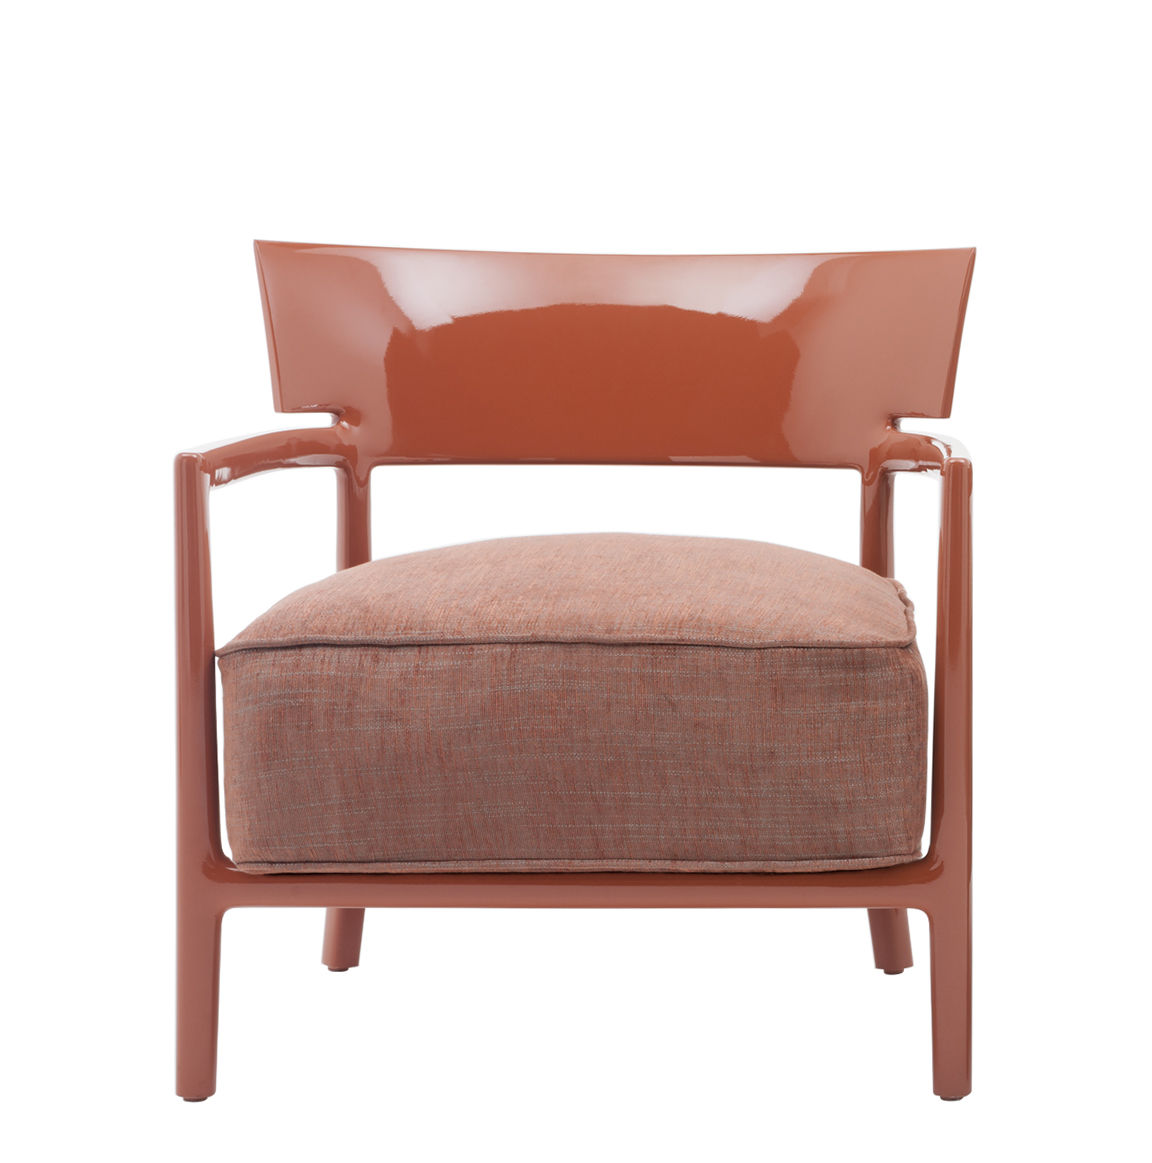 Furniture - Chairs - Cara Solid Color Armchair - / Tissu by Kartell - Orangey-red / Orangey red fabric - Fabric, Polycarbonate, Polyurethane